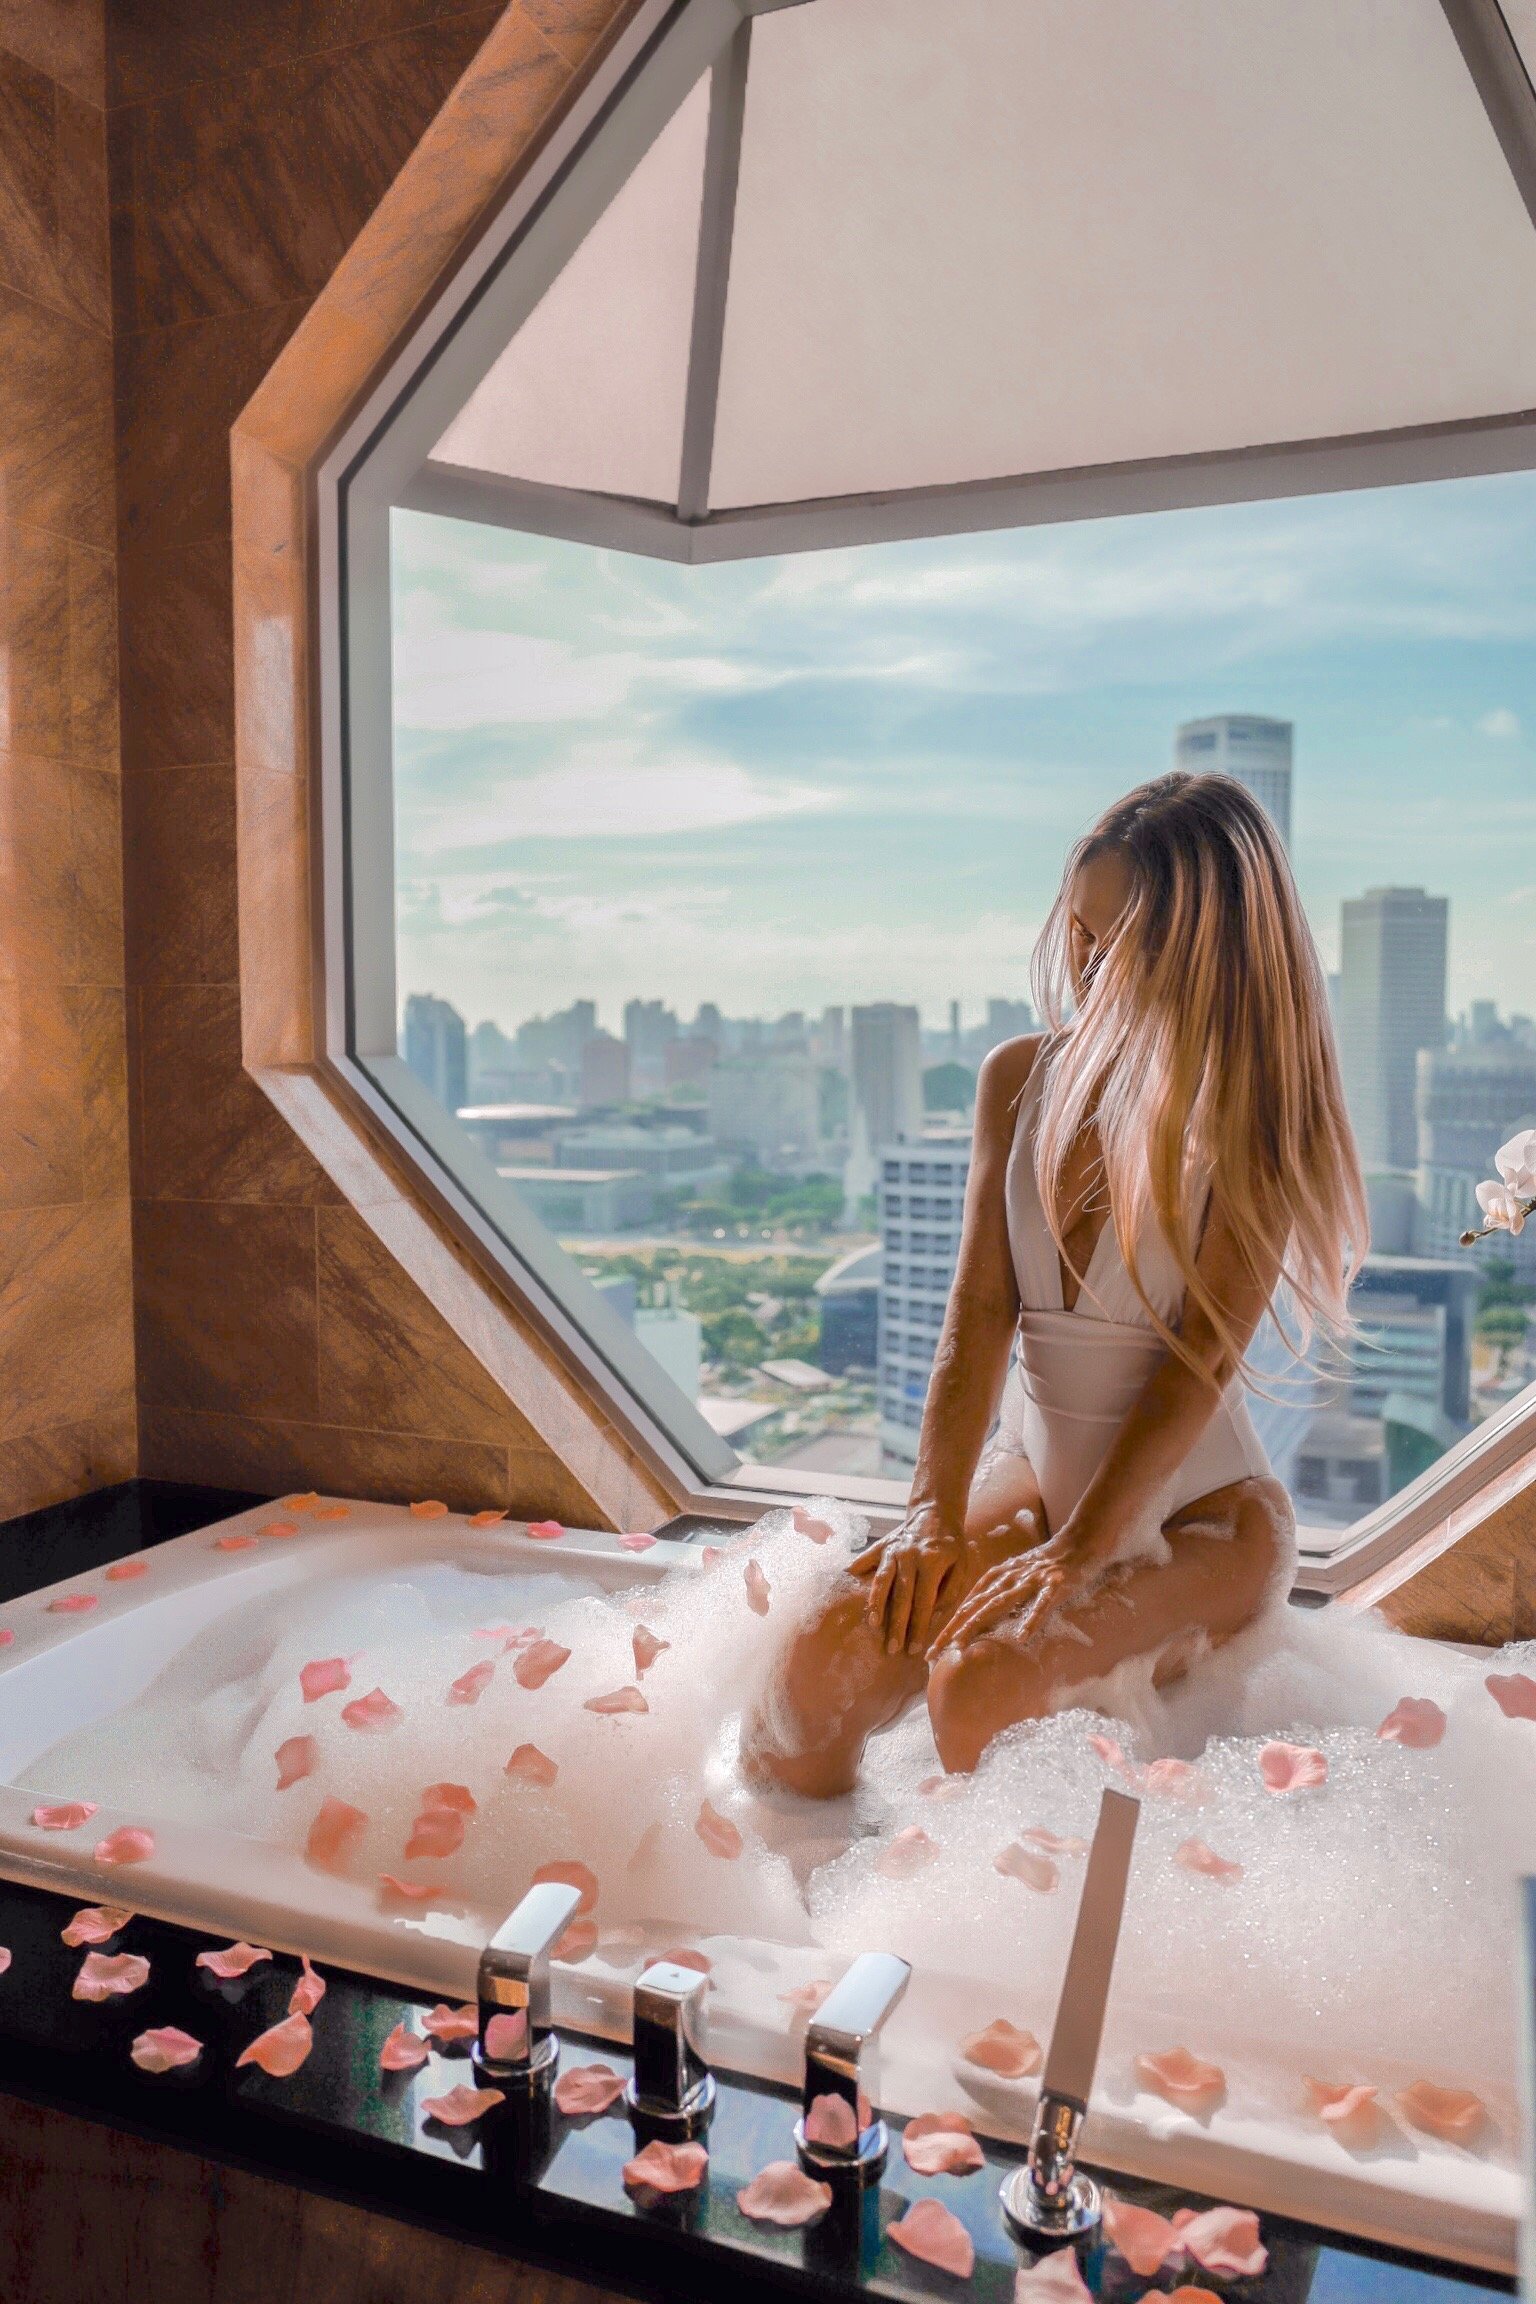 Relaxing Rose petals bath with a beautiful city view